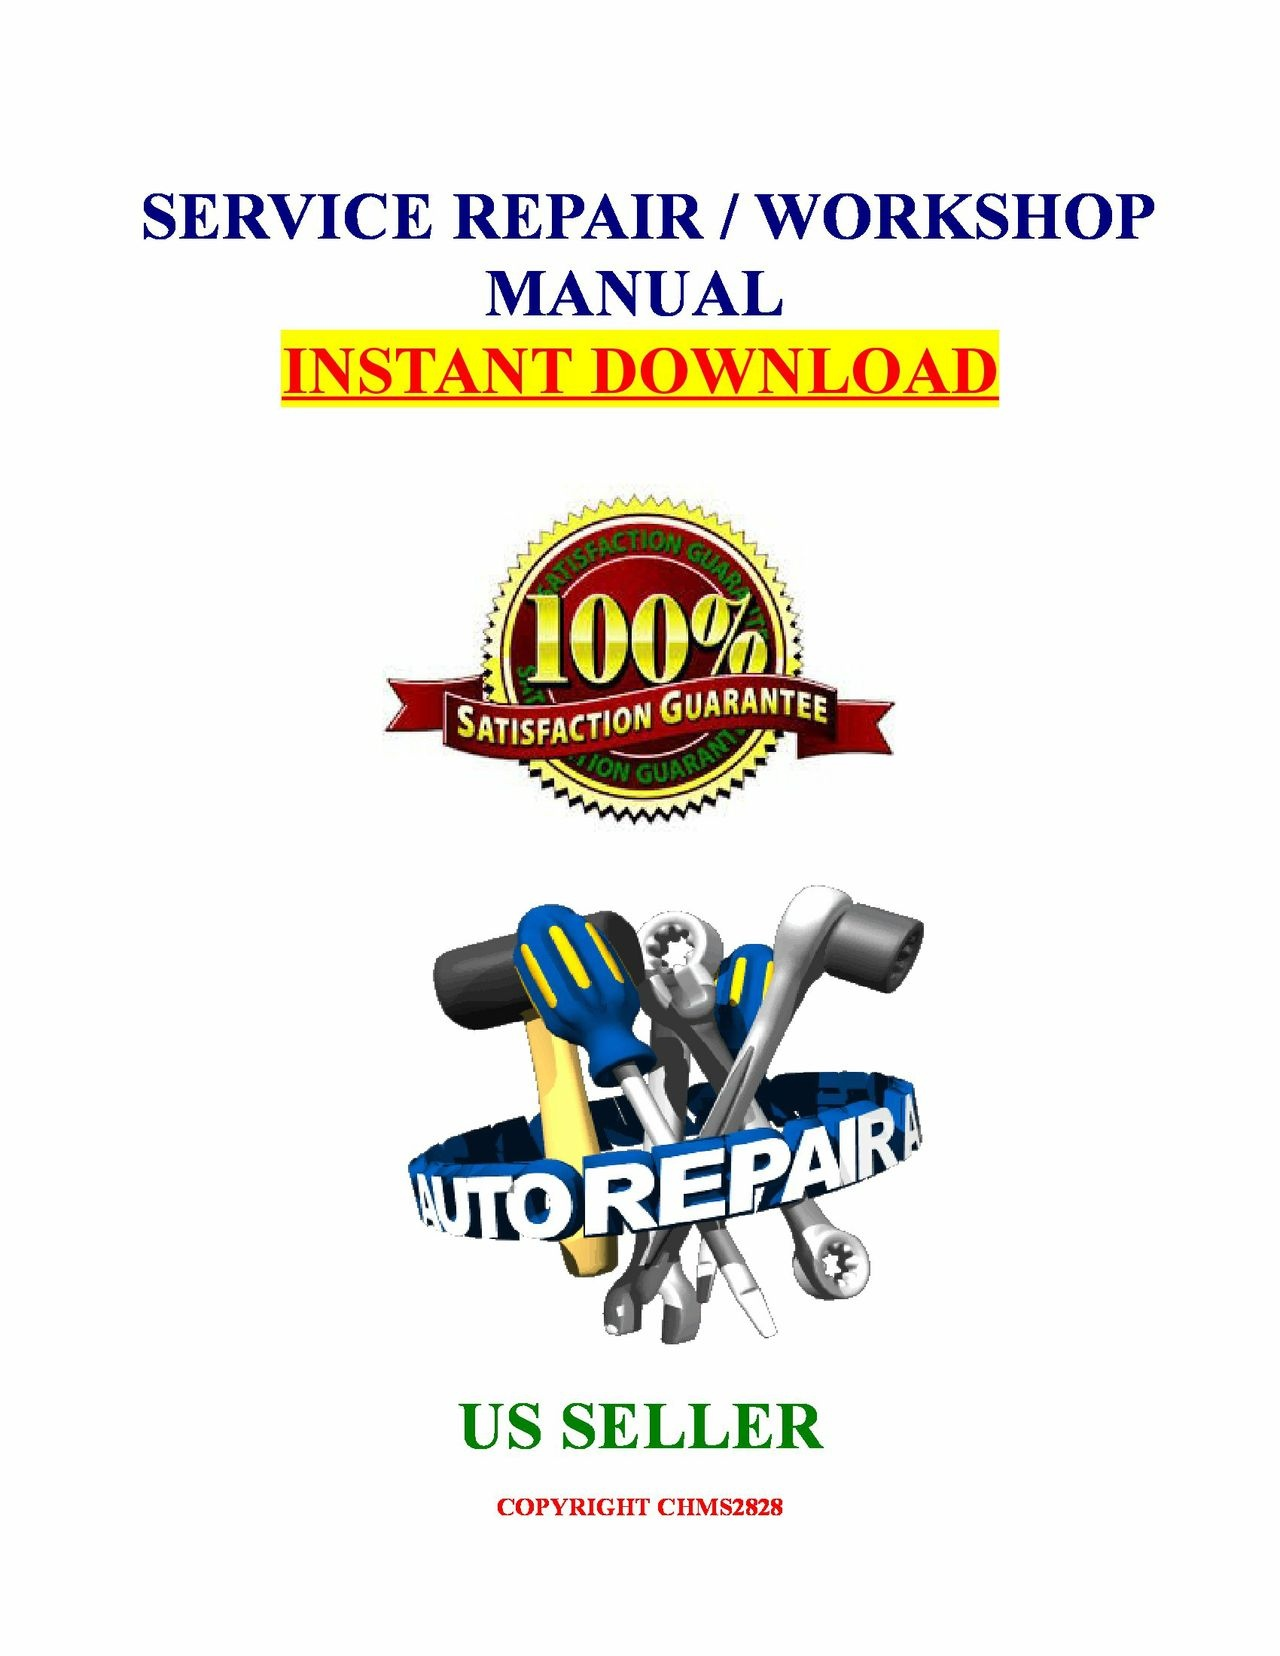 1984 Honda Shadow 700 Repair Manual One Word Quickstart Guide Book Wiring Diagram Vt750c 1983 Vt700c 1985 Motorcycle S Rh Sellfy Com